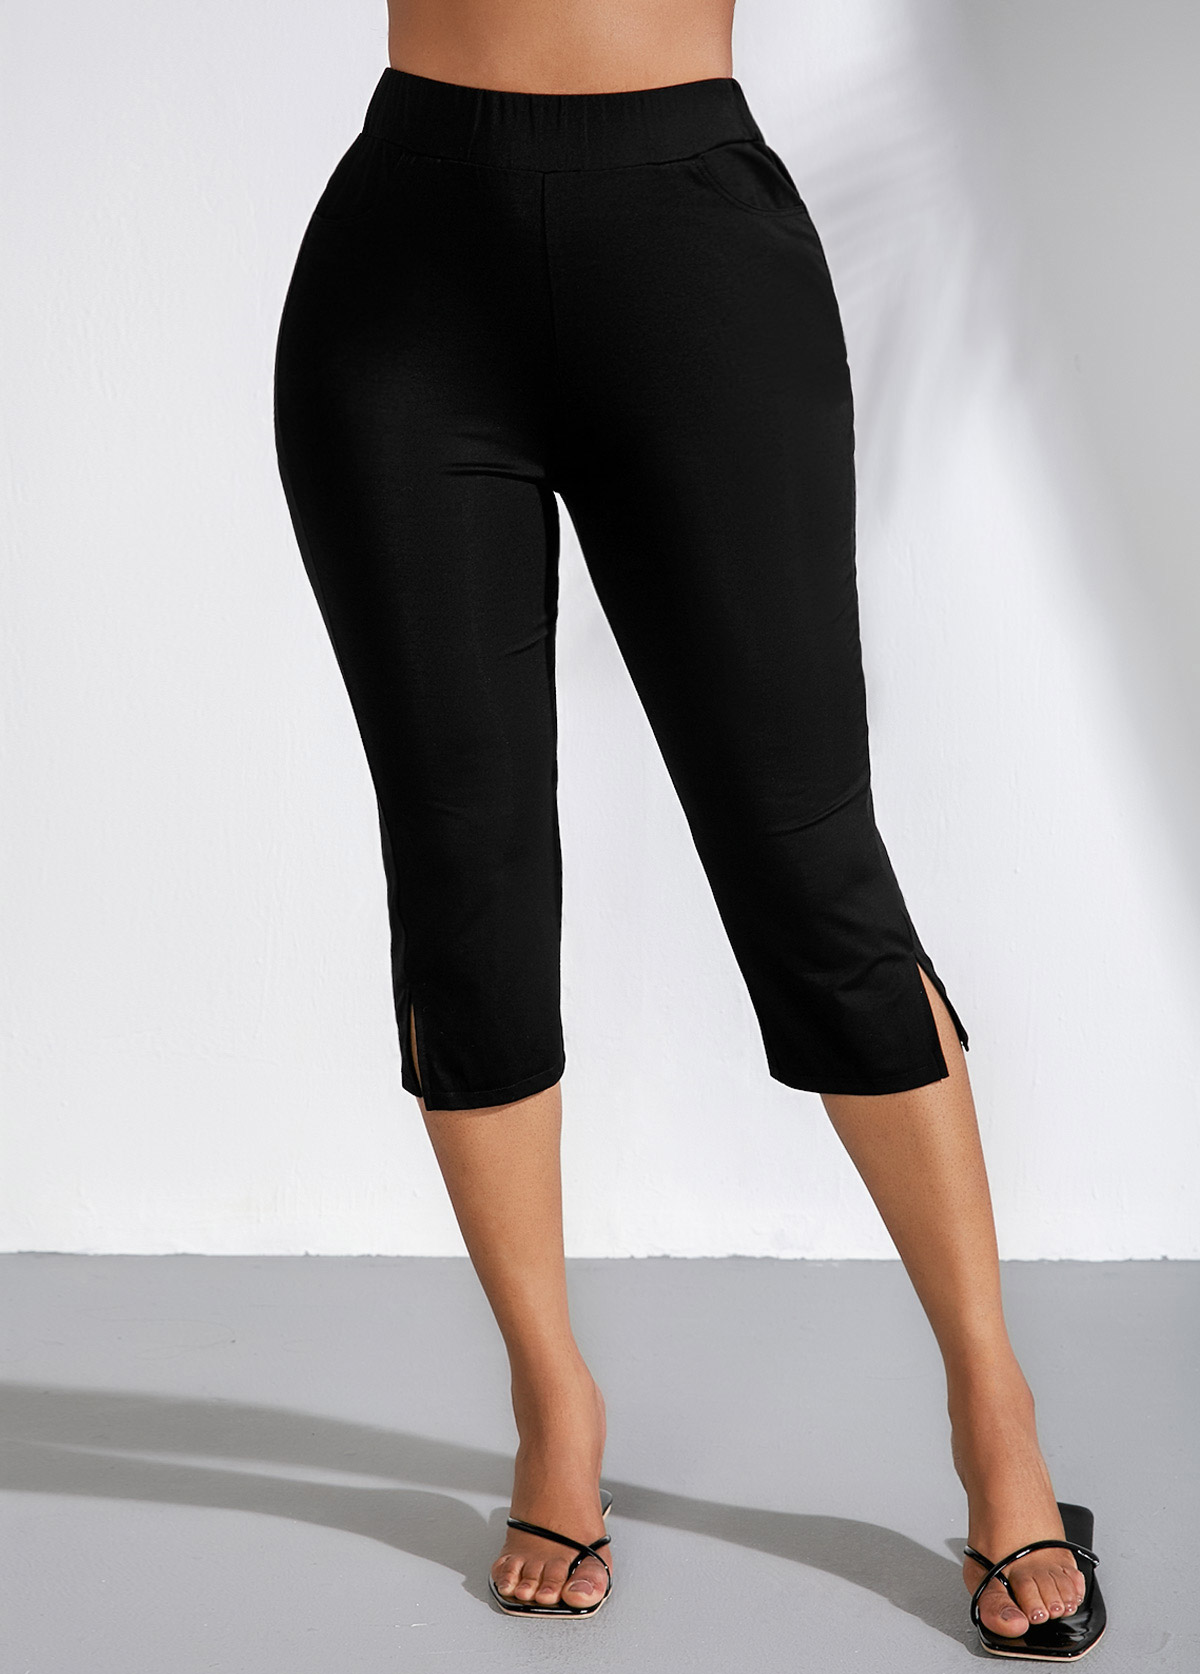 ROTITA Black High Waist Side Slit Cropped Pants